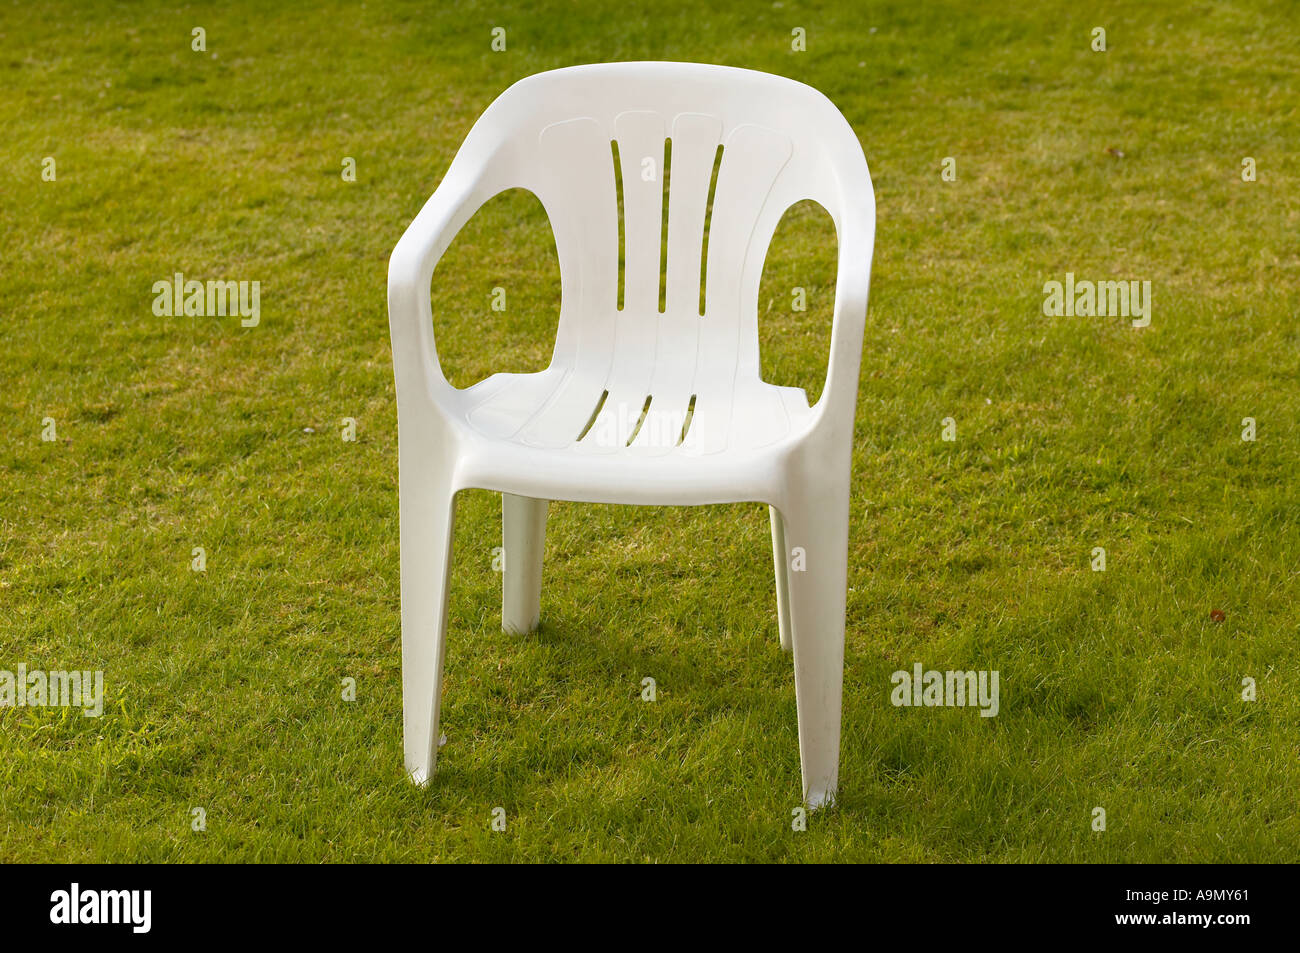 white plastic garden chair standing on lawn - Stock Image & Plastic Garden Chair Stock Photos u0026 Plastic Garden Chair Stock ...